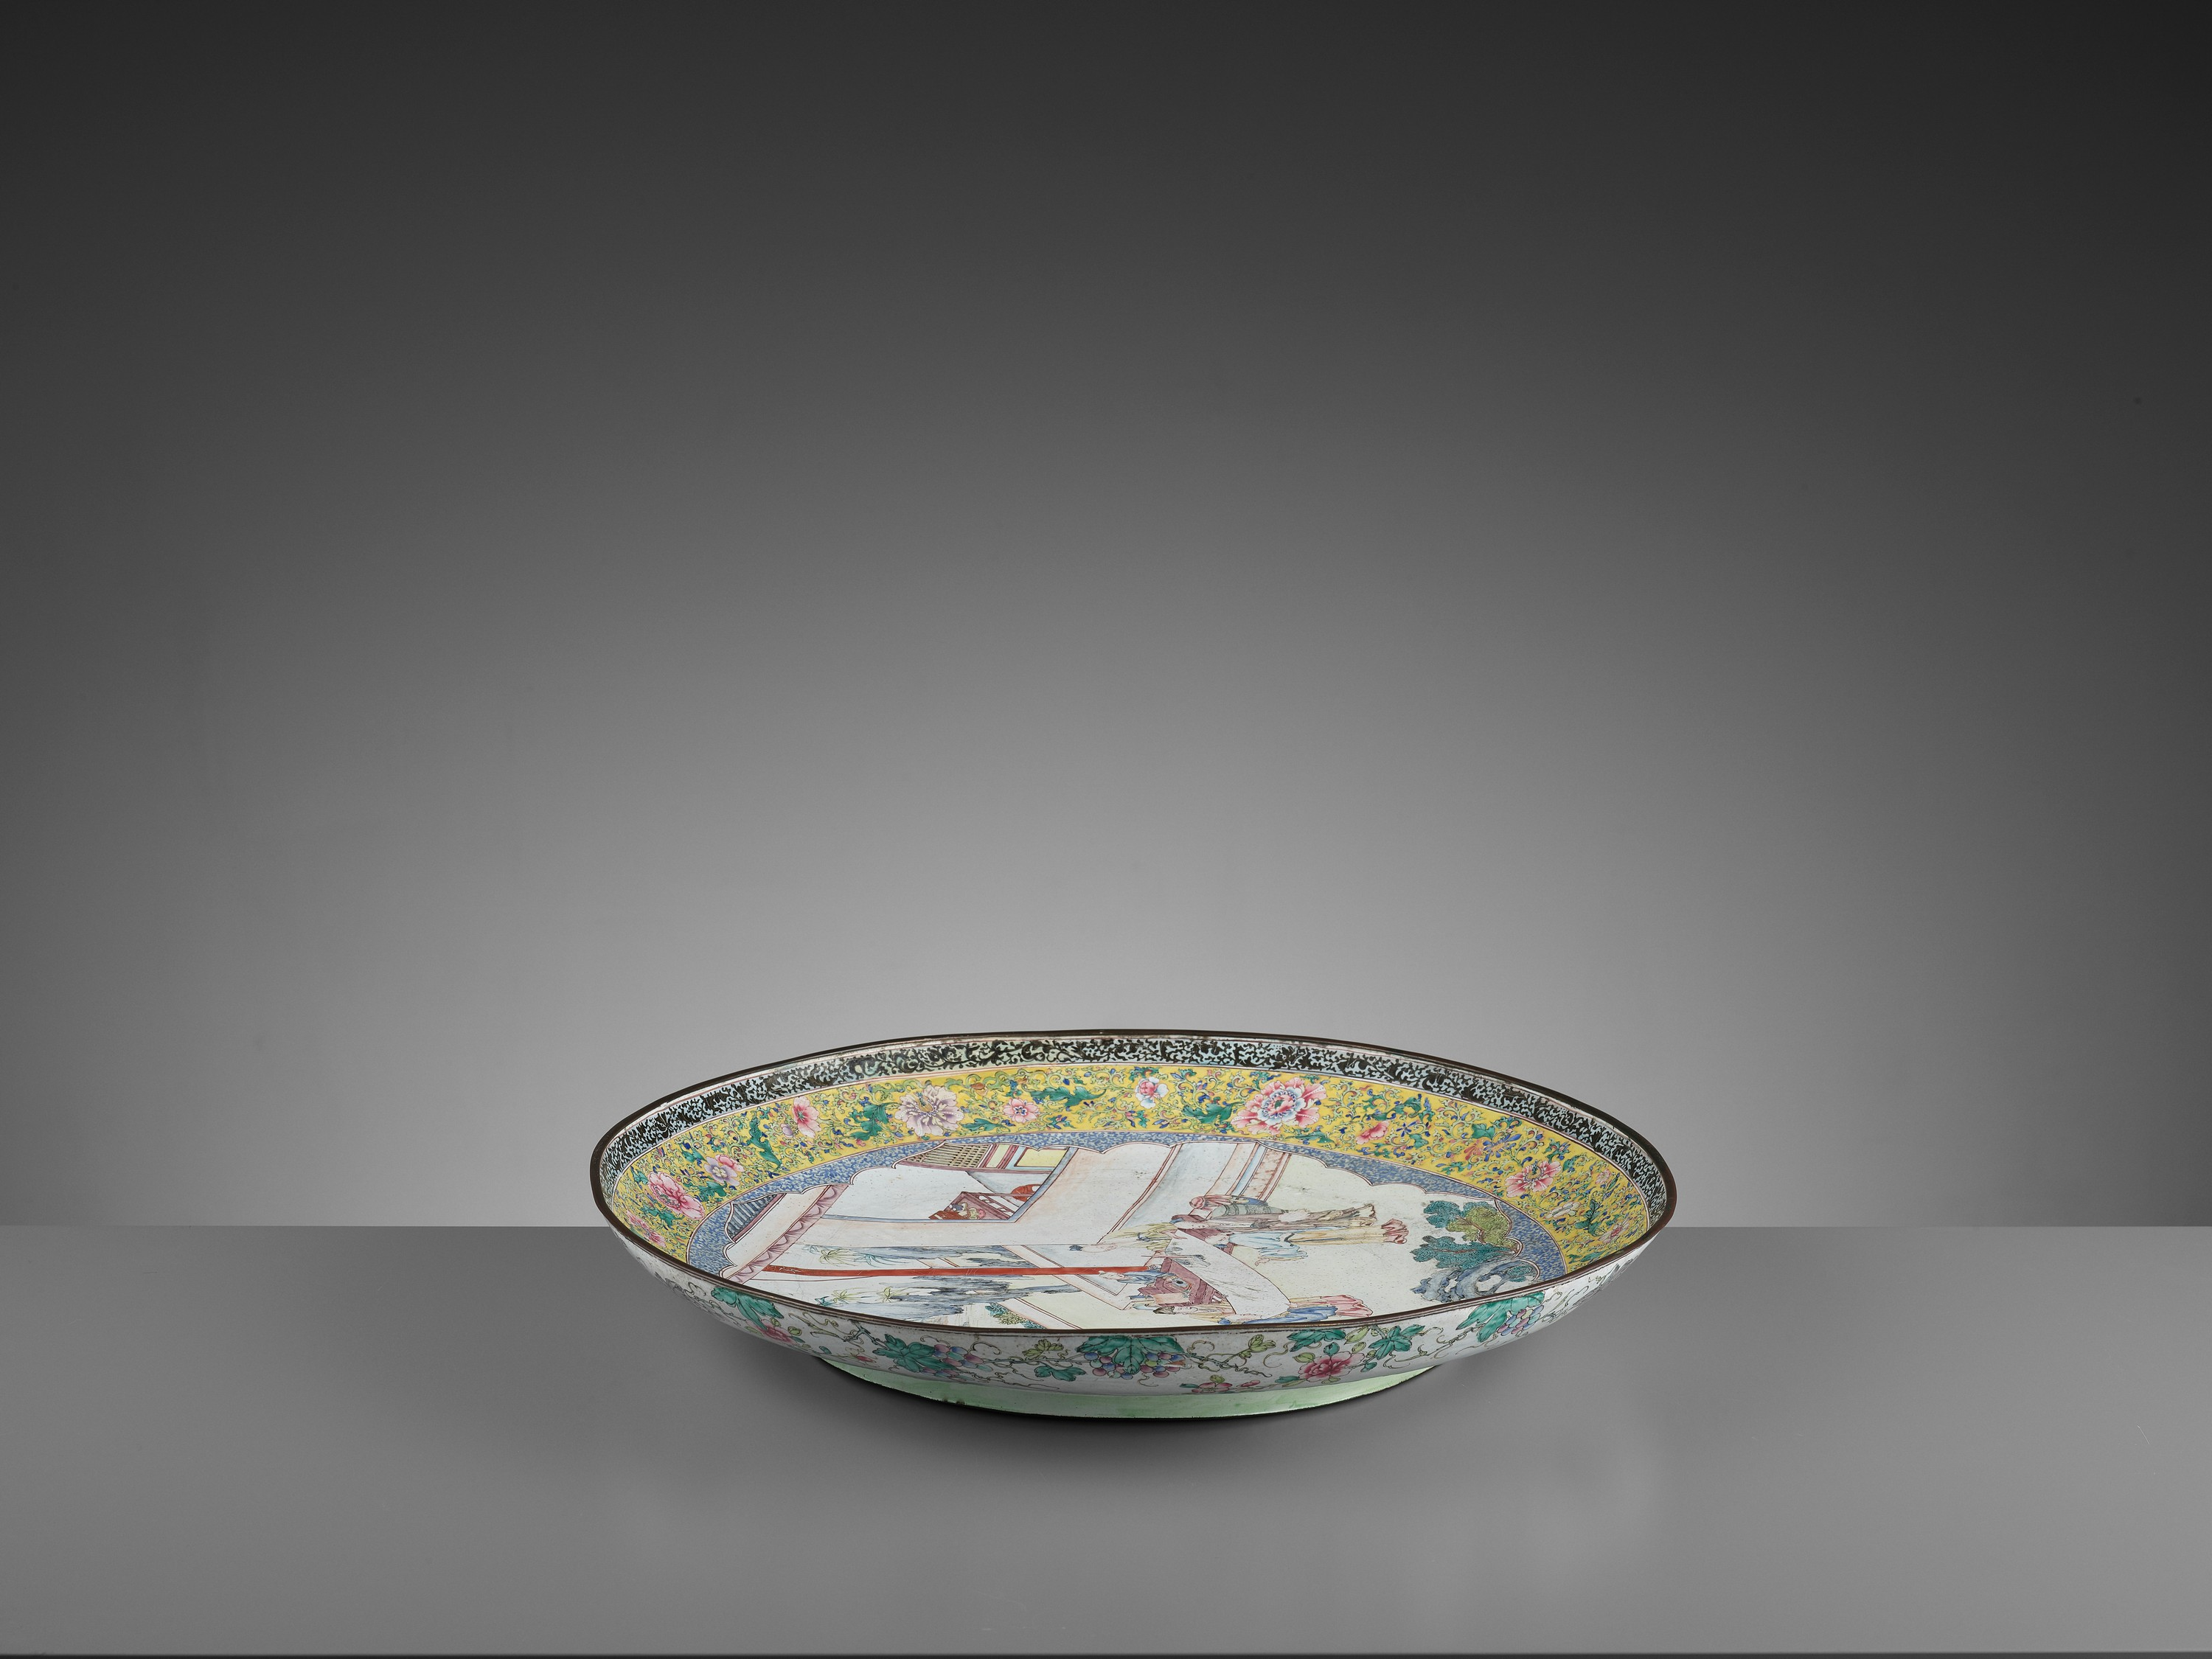 AN EXCEPTIONAL AND VERY LARGE CANTON ENAMEL 'SCHOLARS' DISH, EARLY 18TH CENTURY - Image 8 of 12